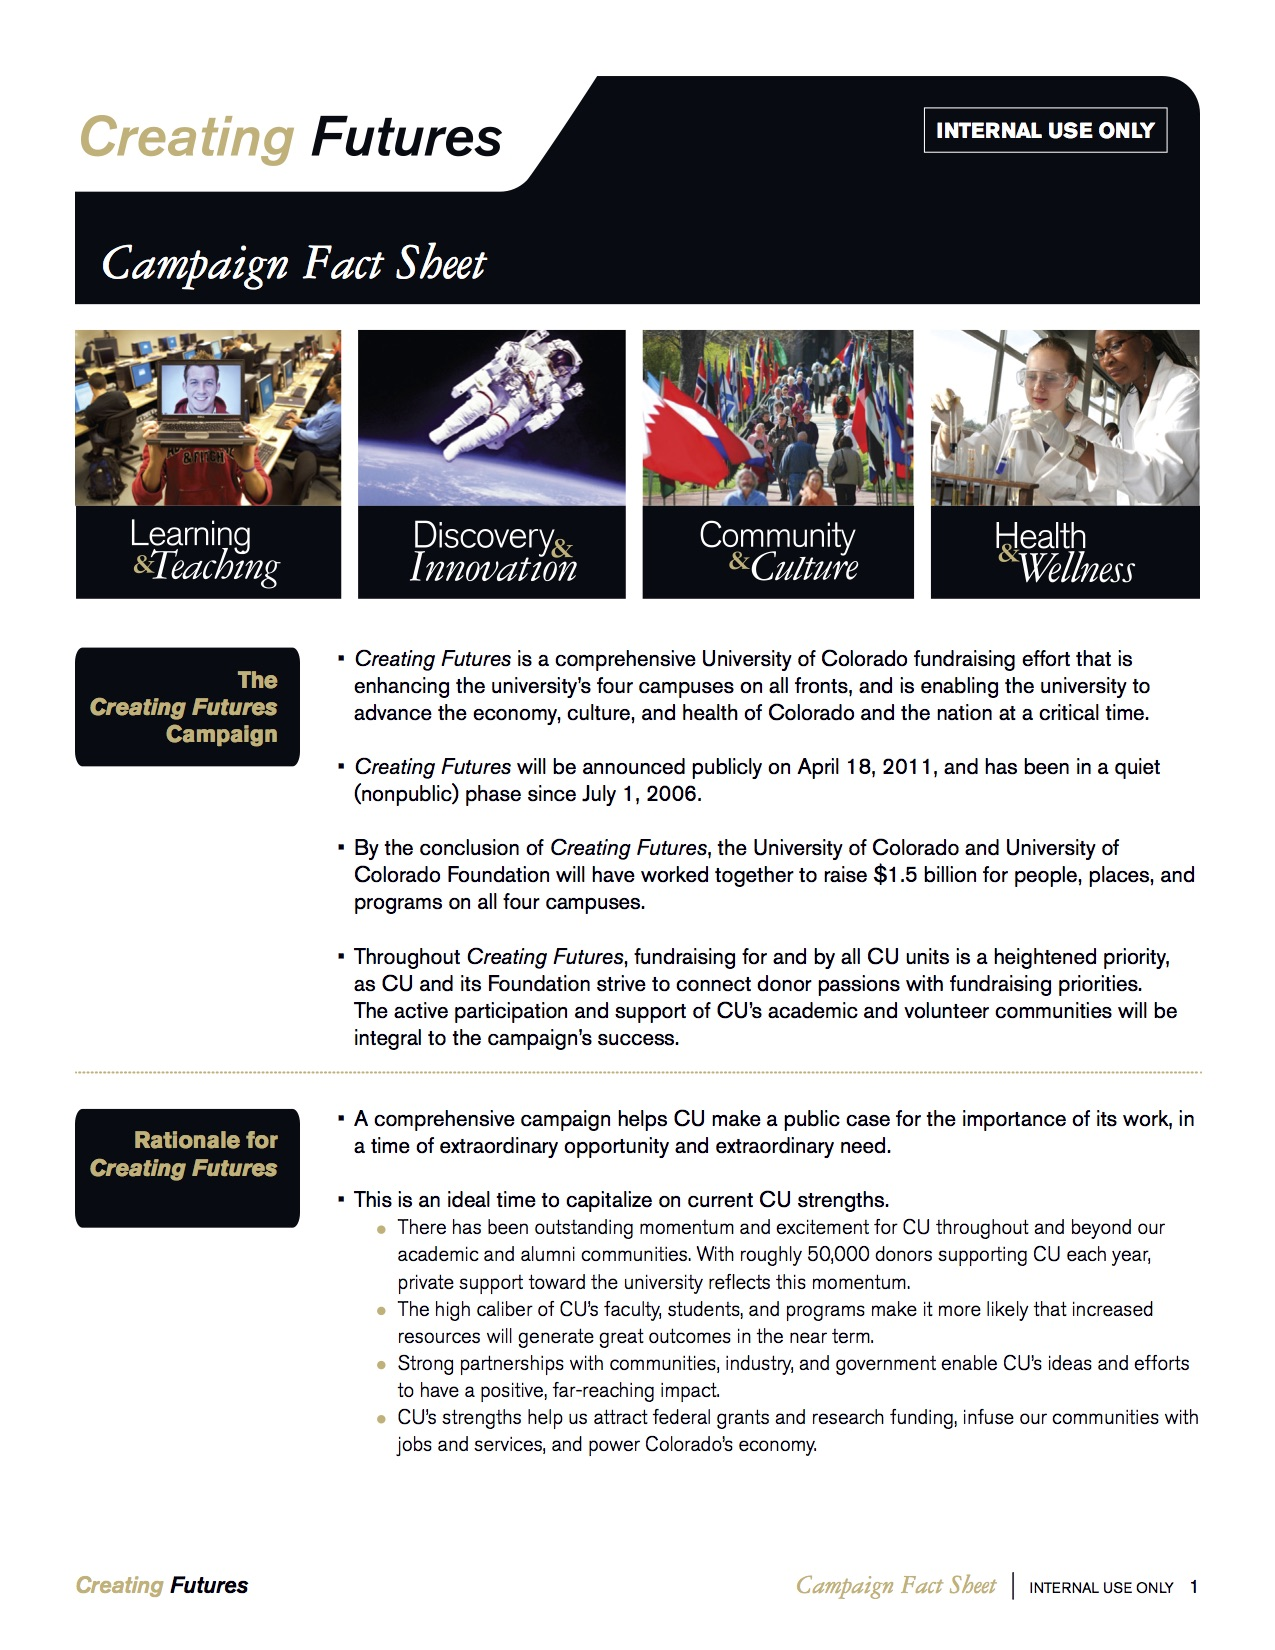 Campaign fact sheet